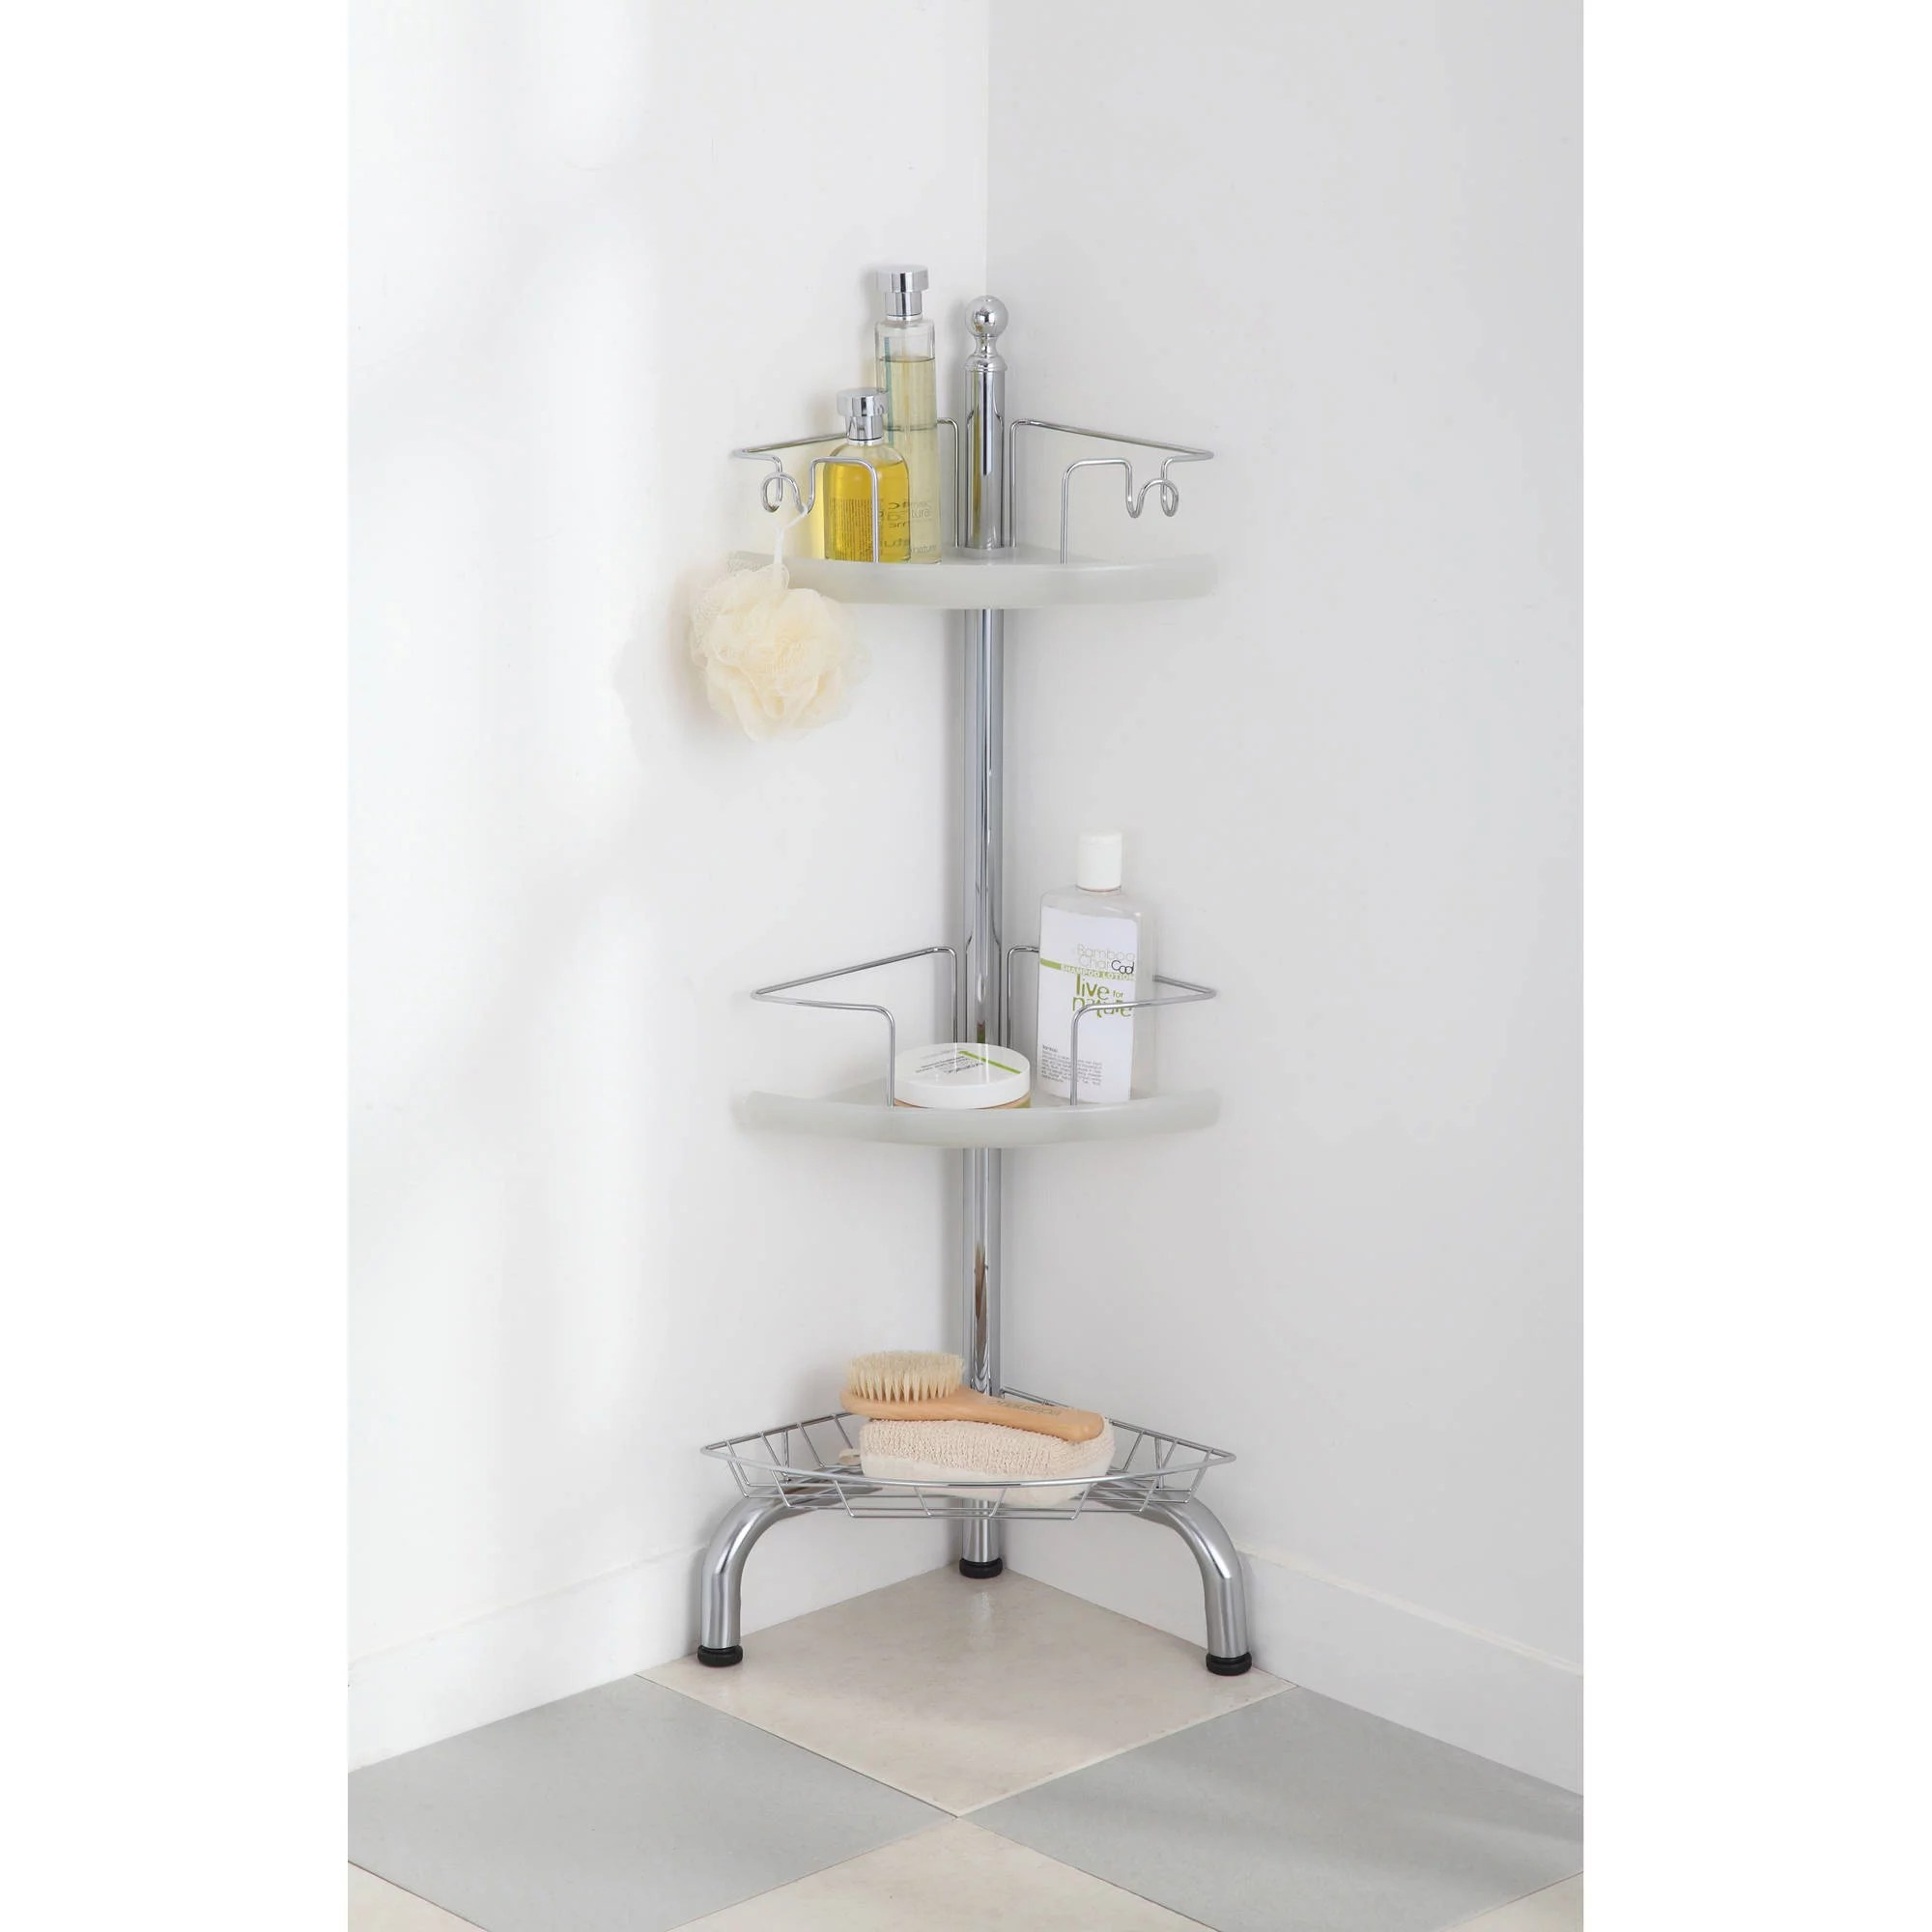 Bathroom Caddy 3 Tier Corner Shower Caddy Adjustable Bathroom Floor